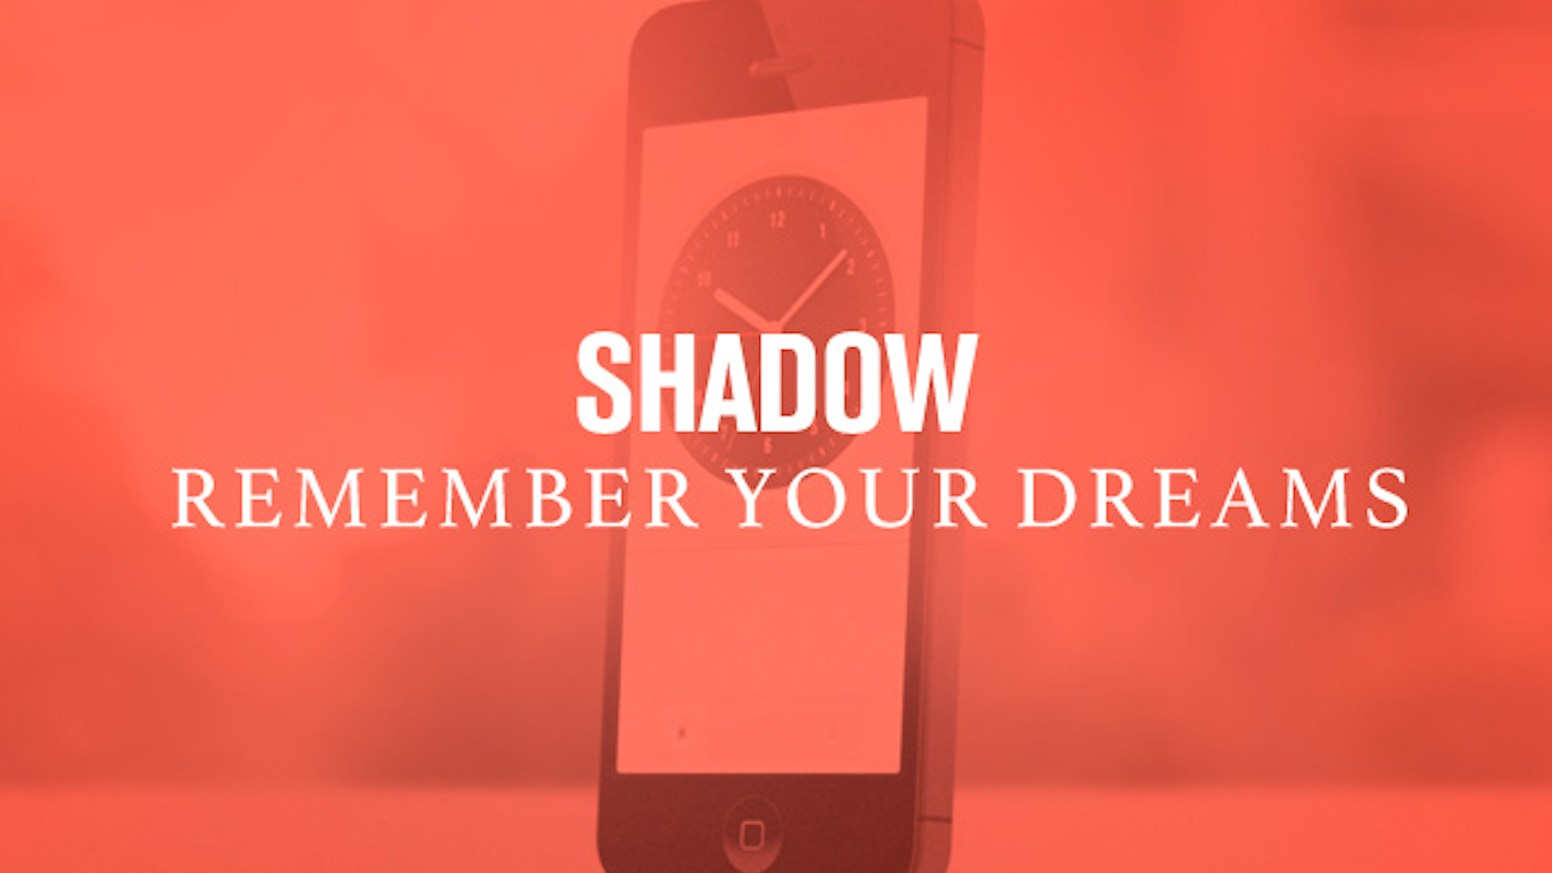 SHADOW is a mobile application that helps you remember and record your dreams. #LETSBUILDSHADOW